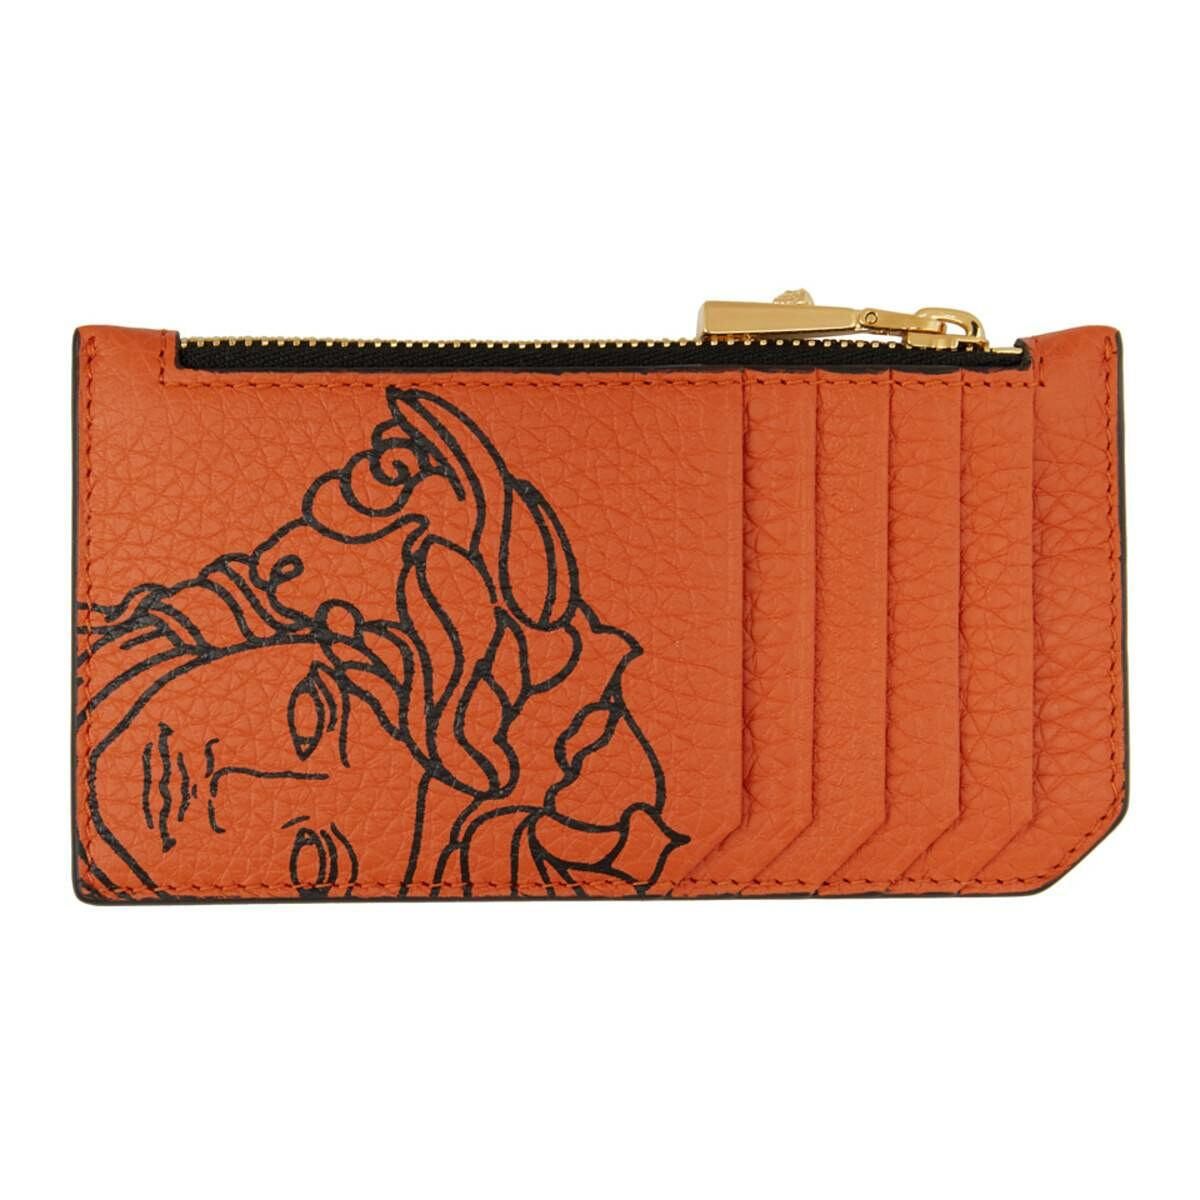 Versace Orange Pop Medusa Long Zip Card Holder Ssense USA MEN Men ACCESSORIES Mens JEWELRY